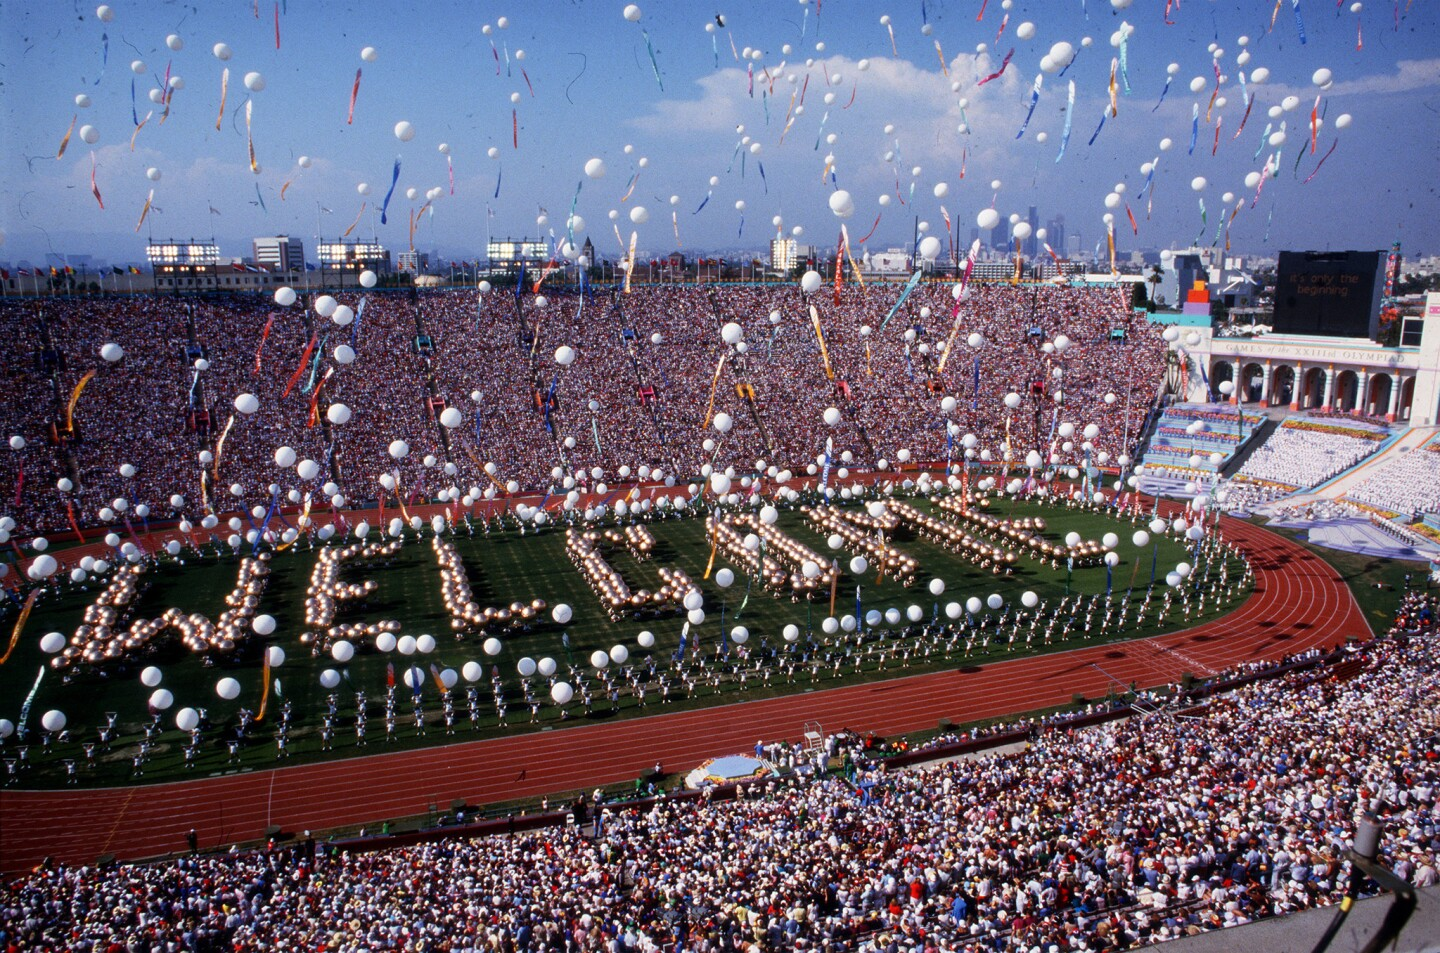 Scene at the Coliseum in Los Angeles during opening ceremonies of the 1984 Summer Olympic Games.